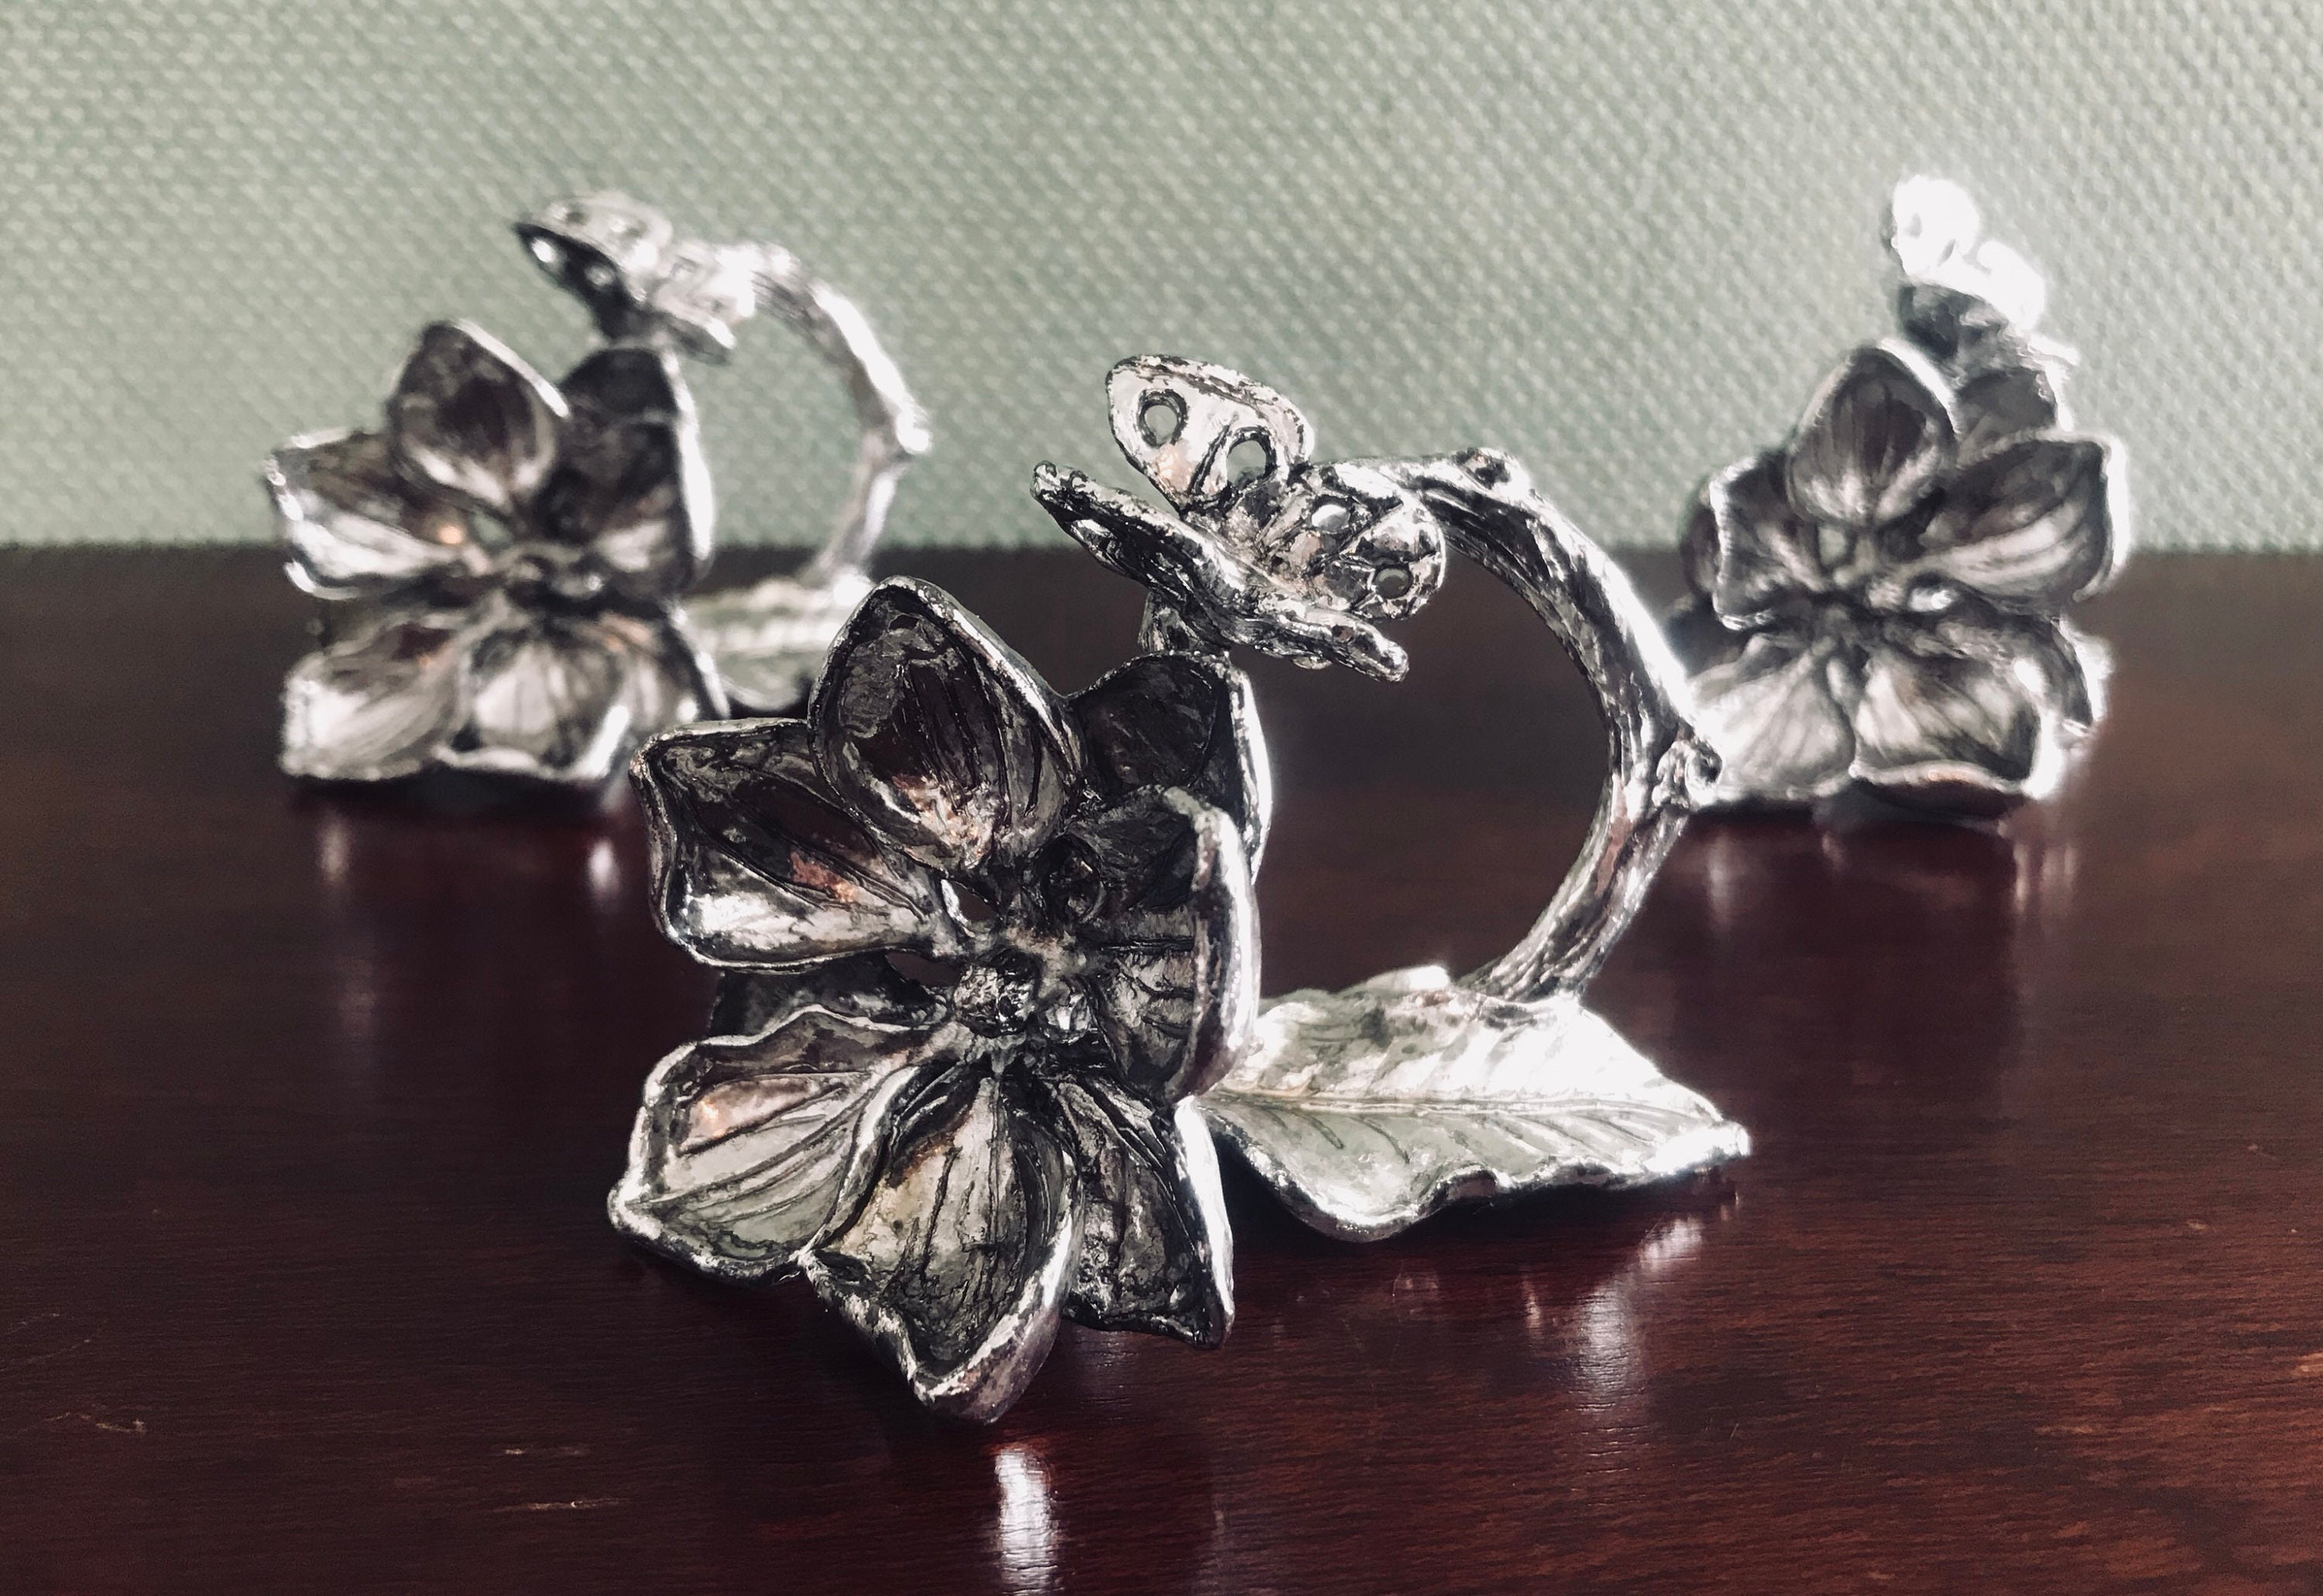 Vintage Magnolia Napkin Rings 3 Piece Set Arthur Court Silverplate Cottage Chic Gift For Her Tablesetting Decor Figural Napkin Rings